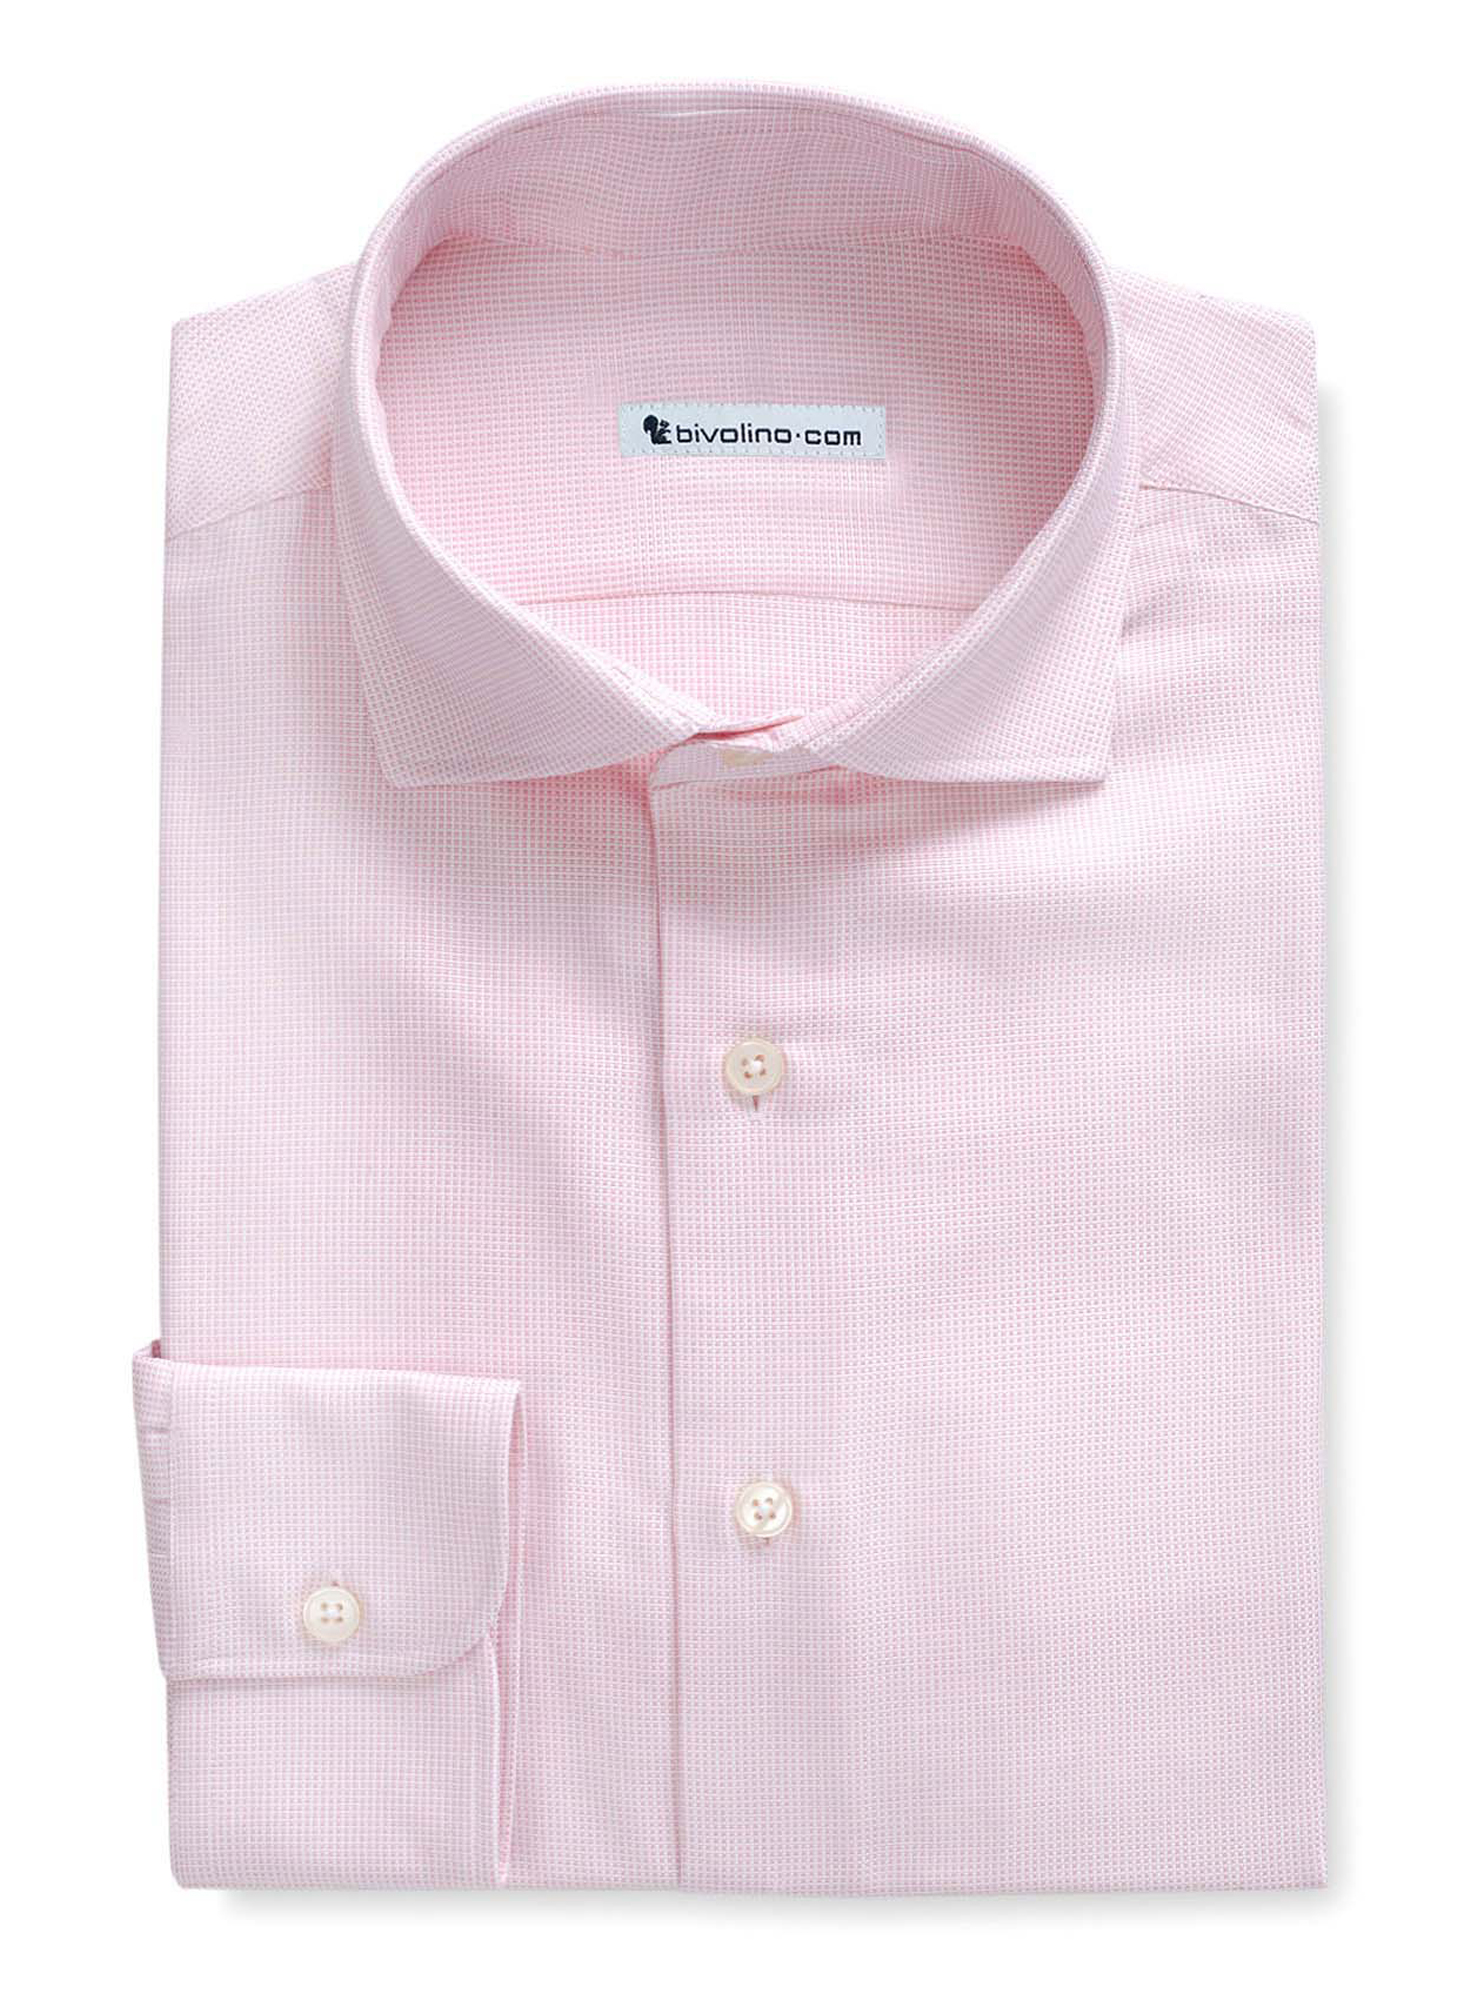 PANIMANO - Oxford solid pink shirt  - ROYAL PANAMA 2